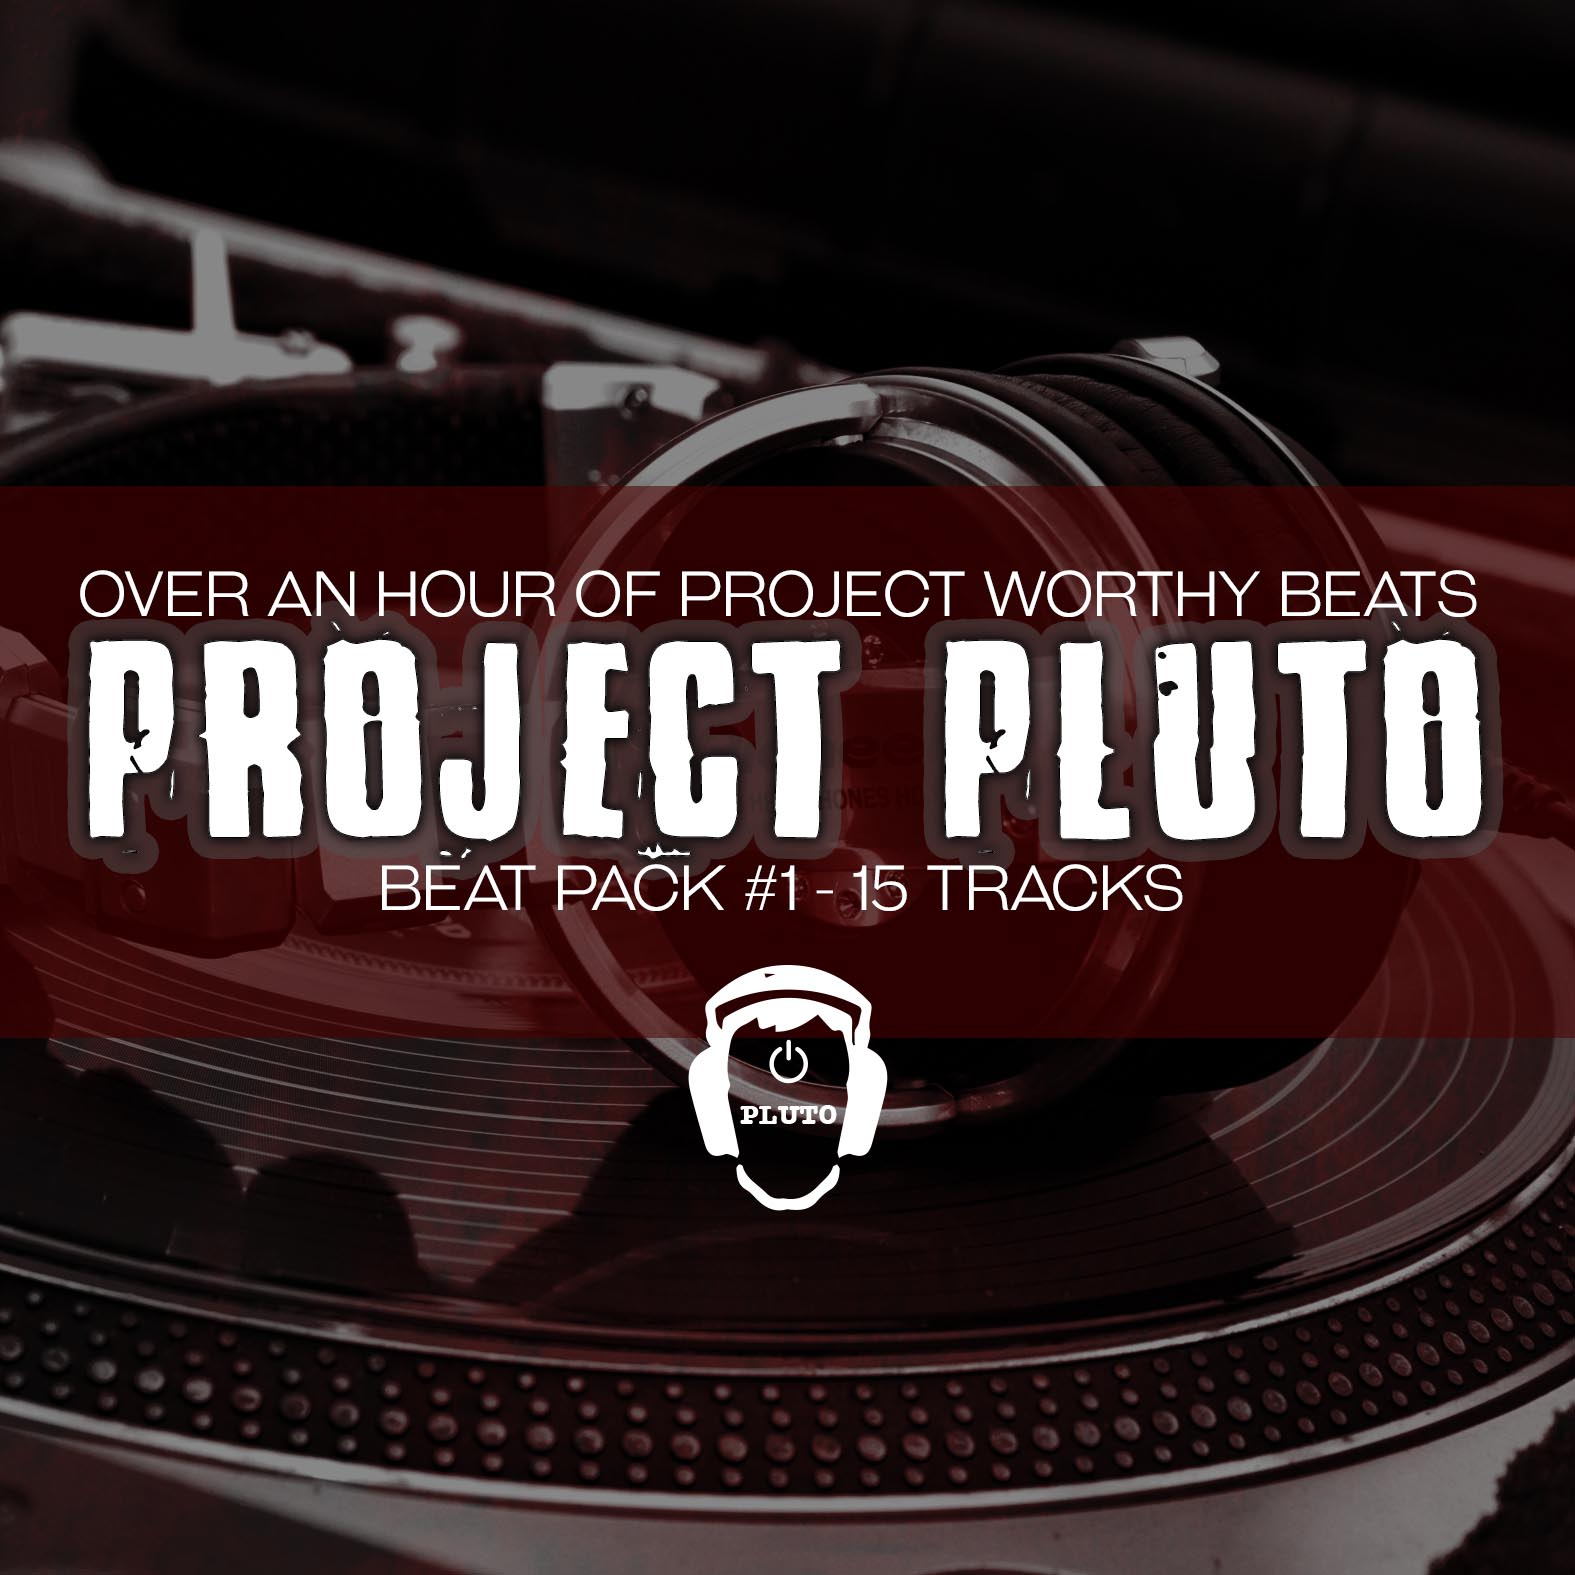 Beat Pack #1 by Project Pluto